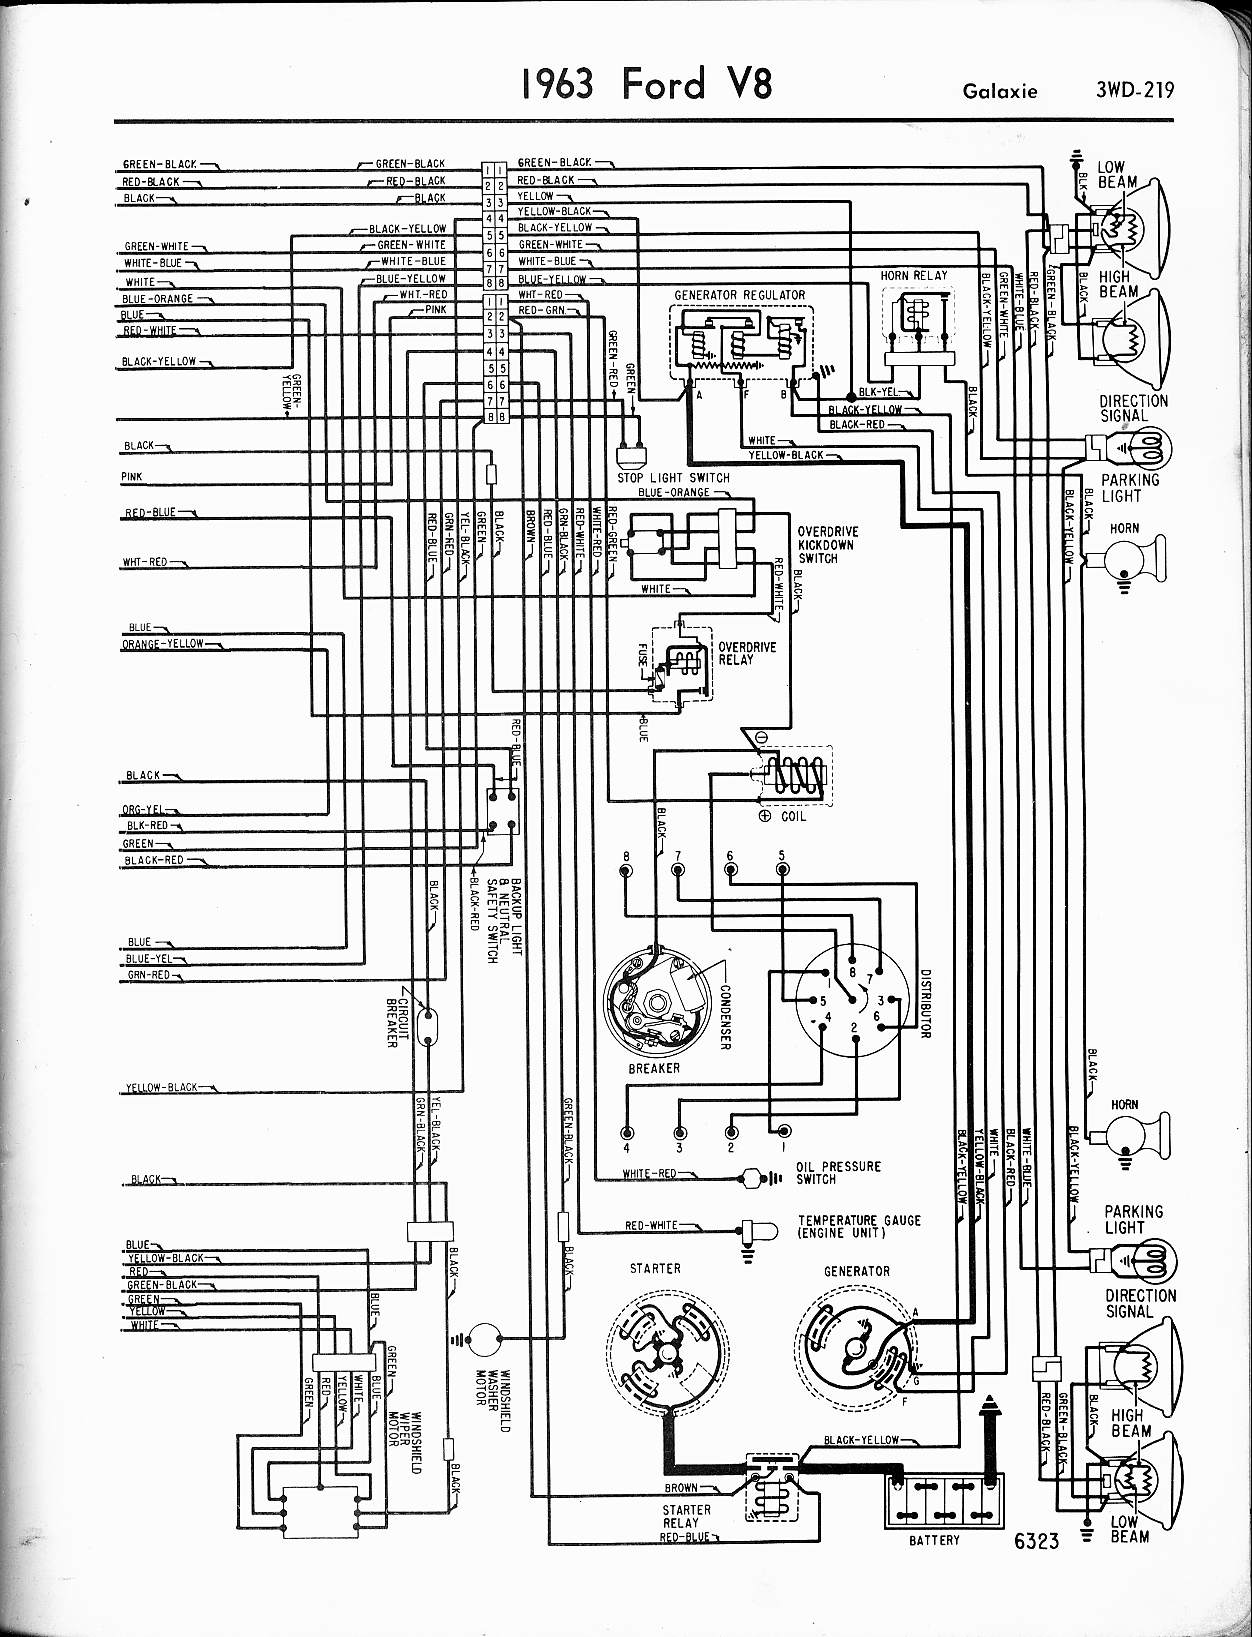 MWire5765 219 57 65 ford wiring diagrams 1963 ford galaxie fuse box diagram at soozxer.org